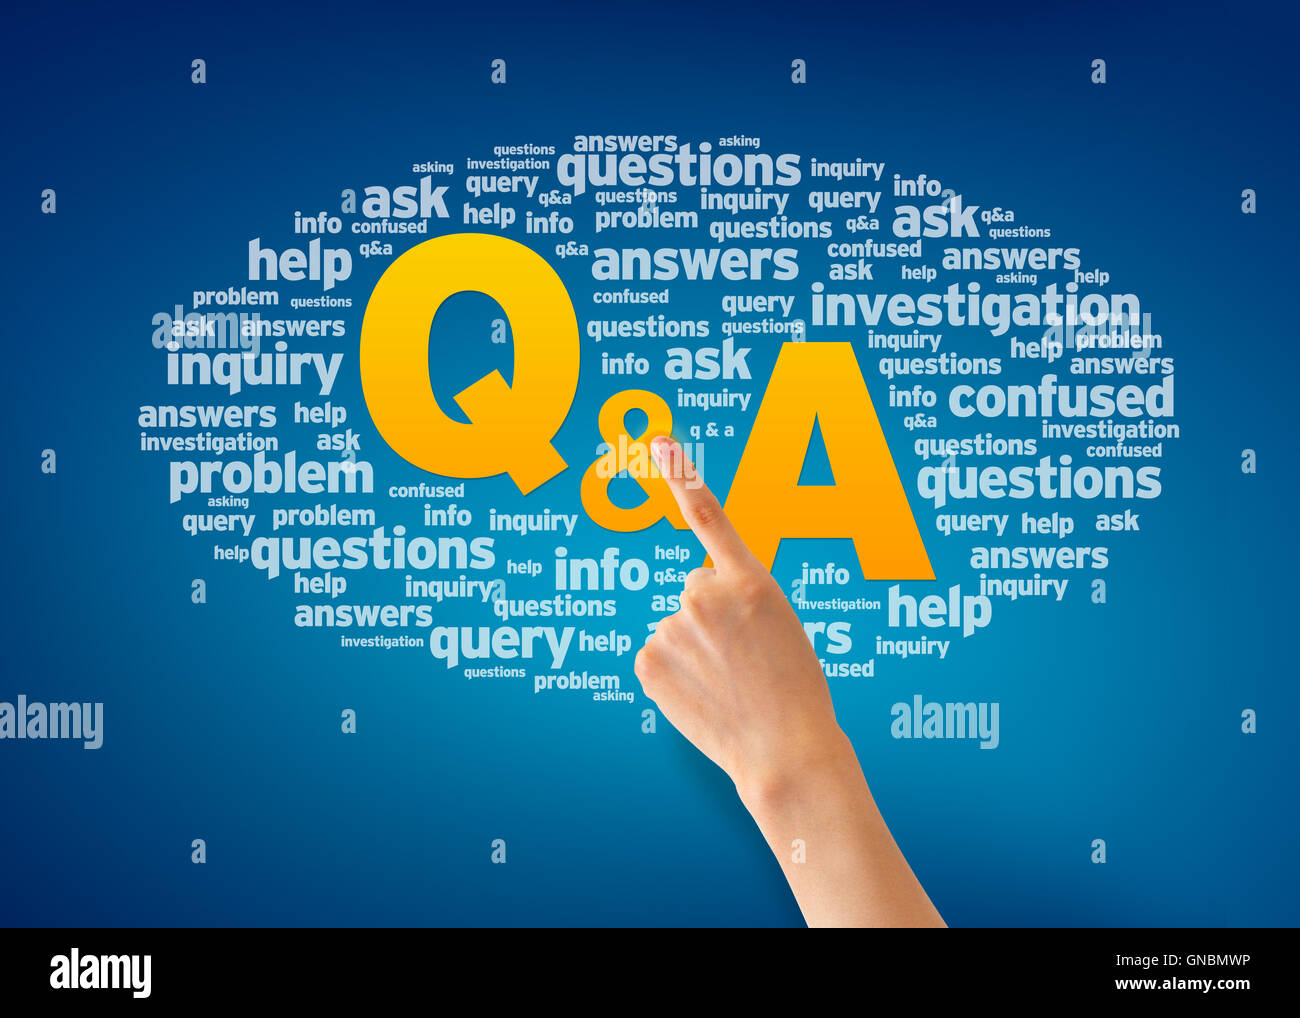 Questions and Answers - Stock Image